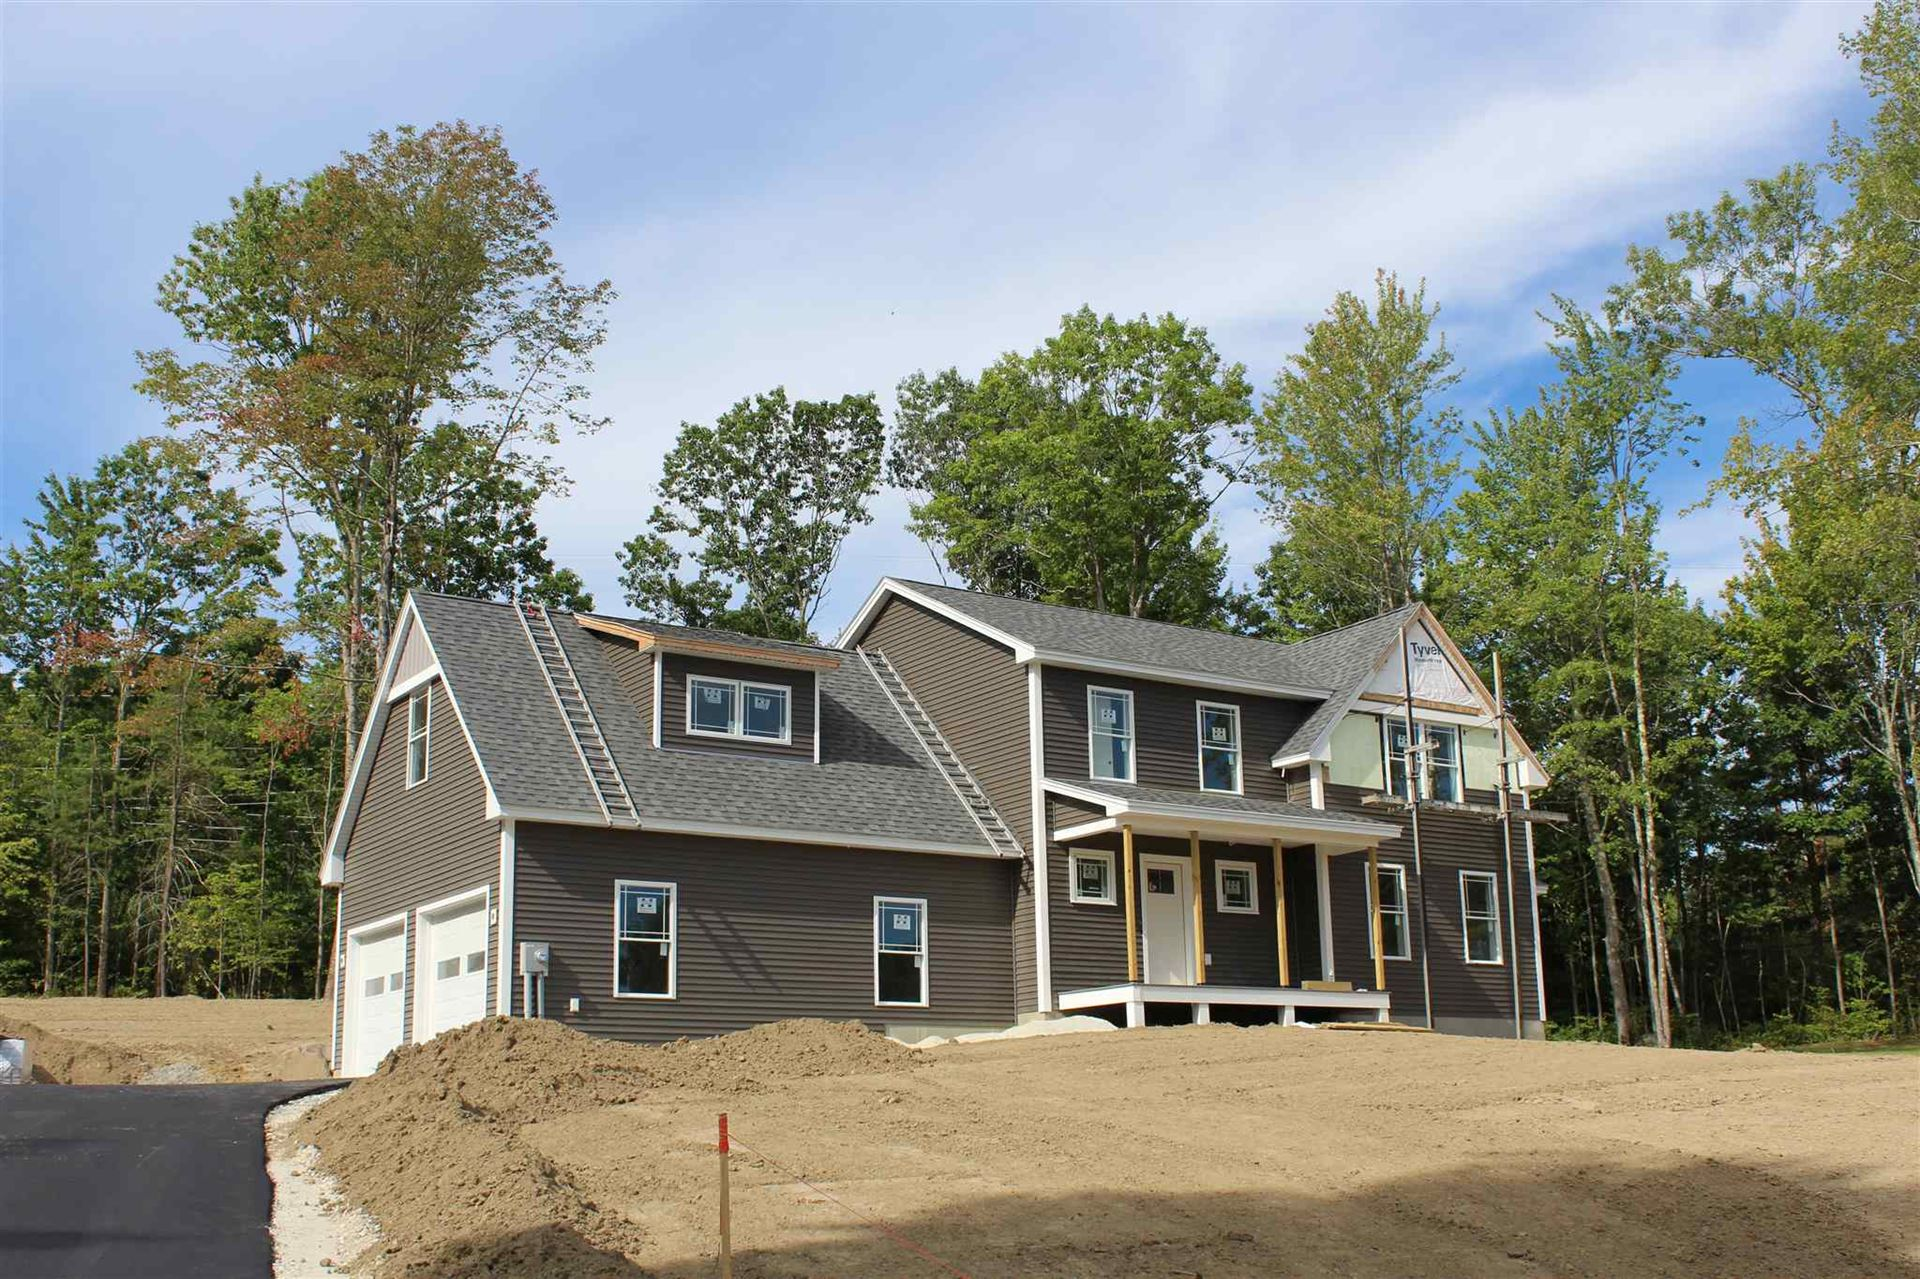 153 Chesley Hill Road, Rochester, NH 03867 - MLS#: 4807229